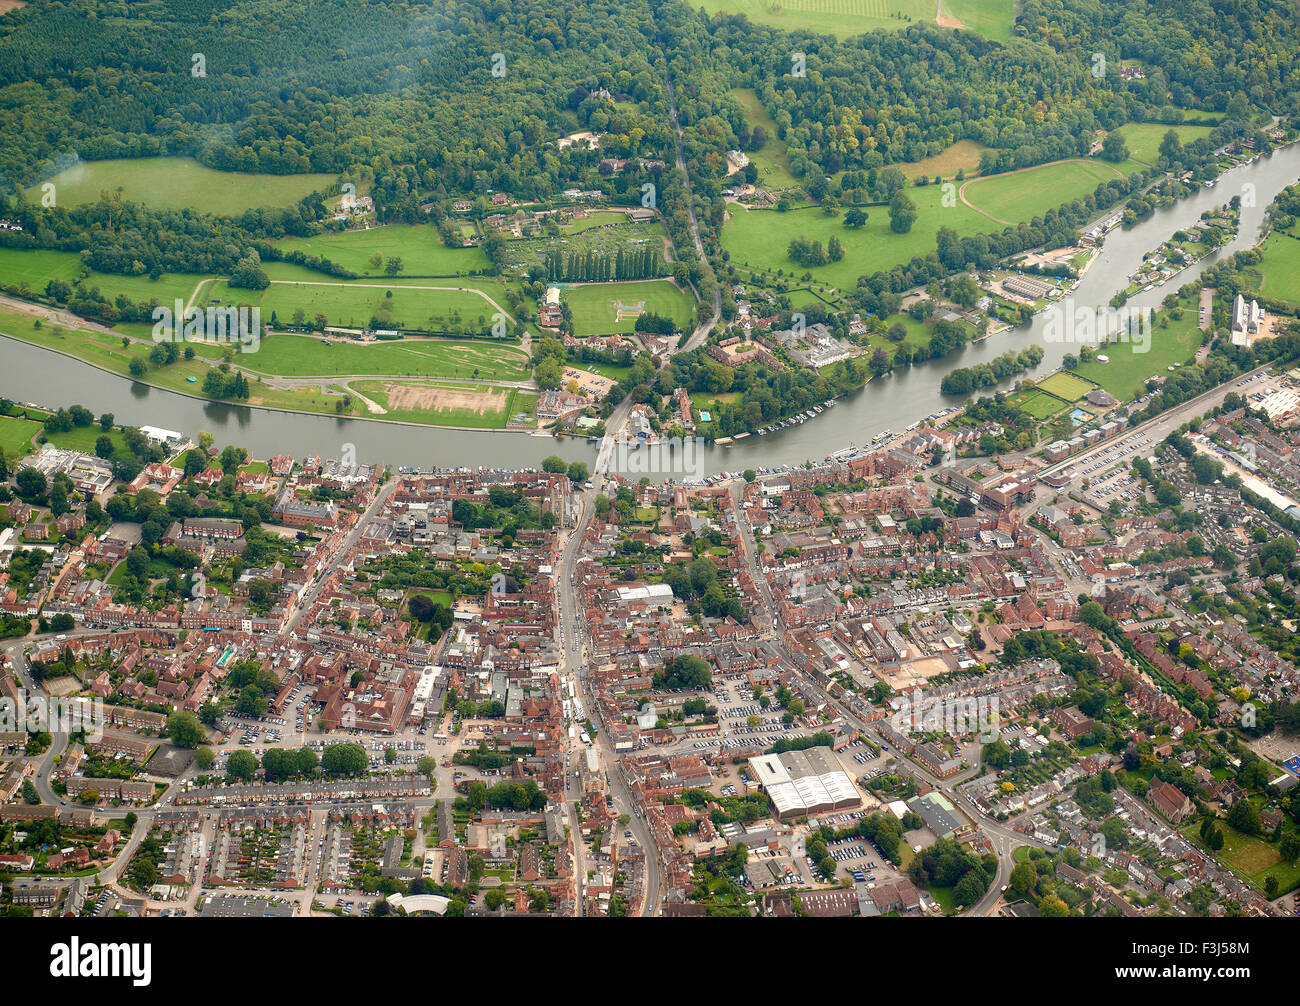 Henley on Thames, south east England, from the air - Stock Image